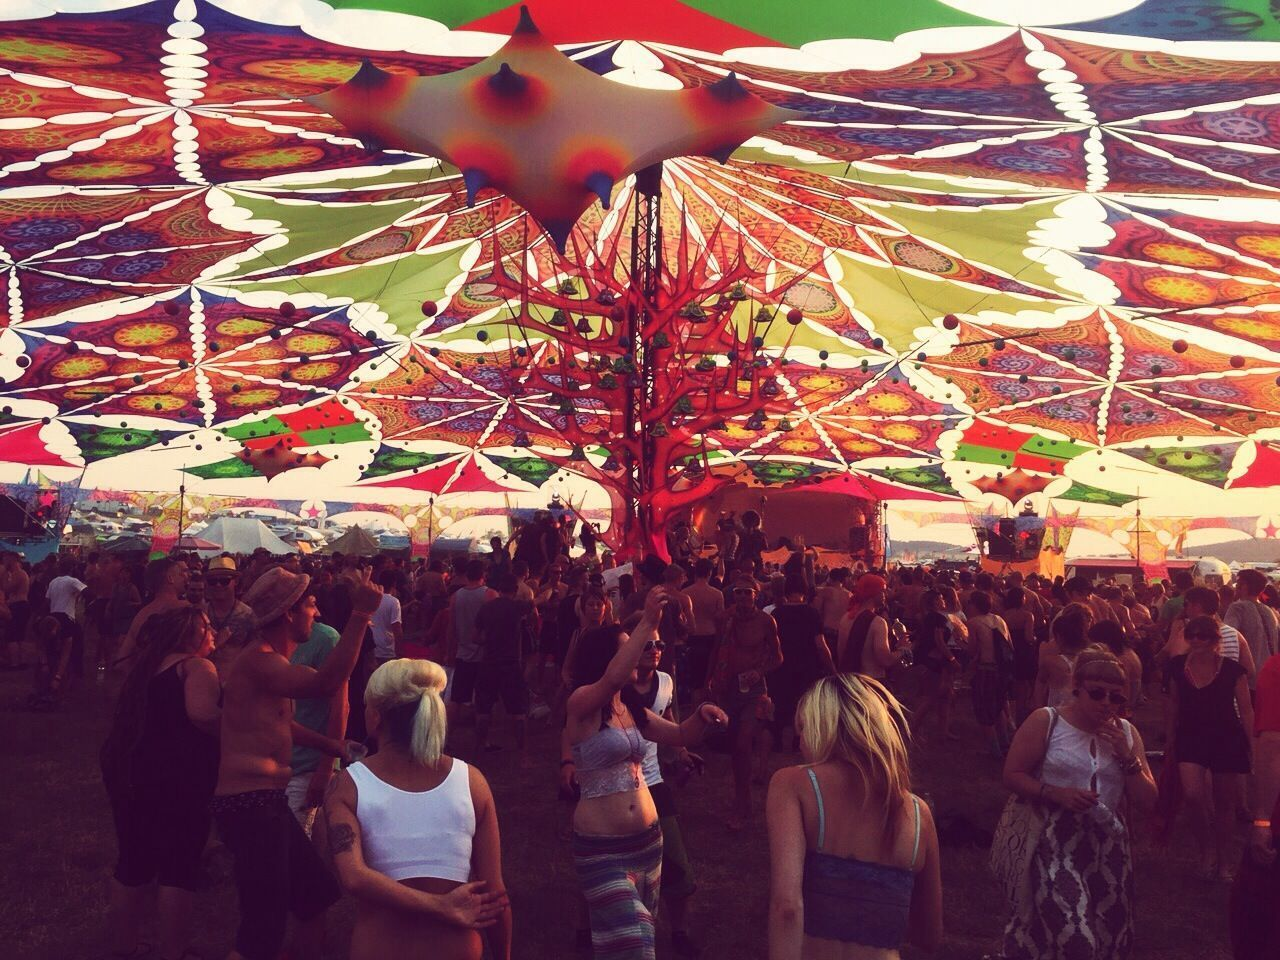 Adrenaline Junkie Happy People Electronic Music Shots Antaris Crazy People Happy People. Warm Day Hot Day ☀ Hot Summer Day Narture Sunshine Festival Dancing Around The World Dance ❤ Psychedelicdreams Crazy Moments Sun Nature